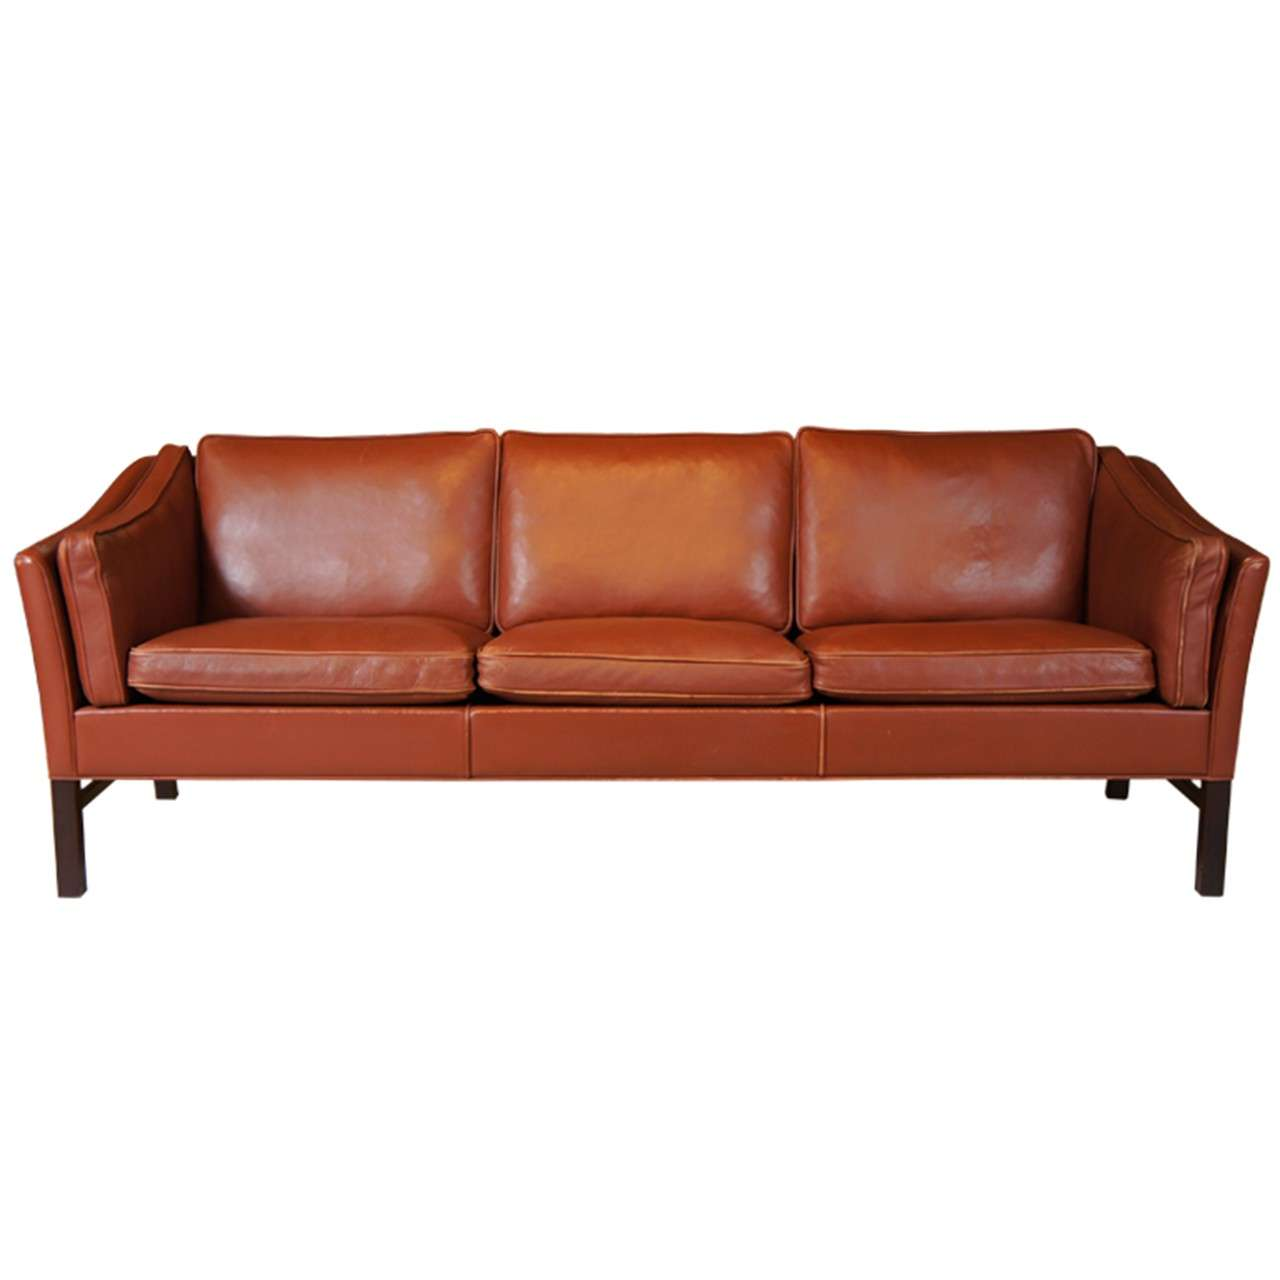 Danish modern leather sofa at 1stdibs Danish modern furniture